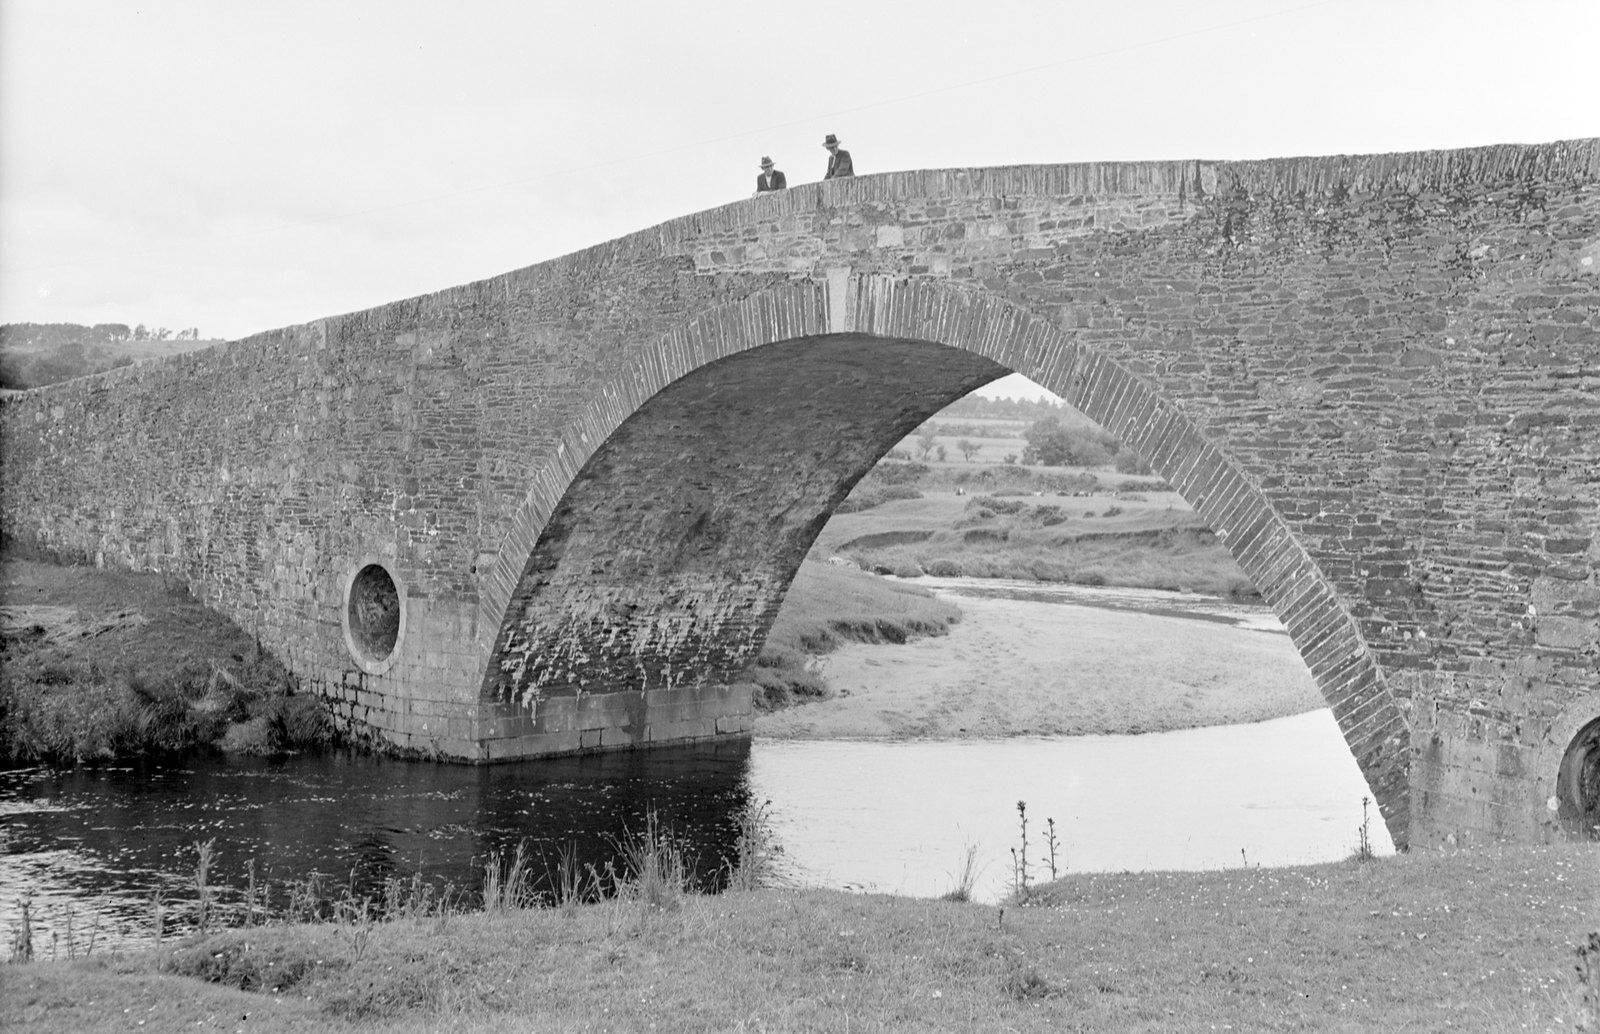 Humphreystown Bridge, Blessington, Co. Wicklow. | by National Library of Ireland on The Commons